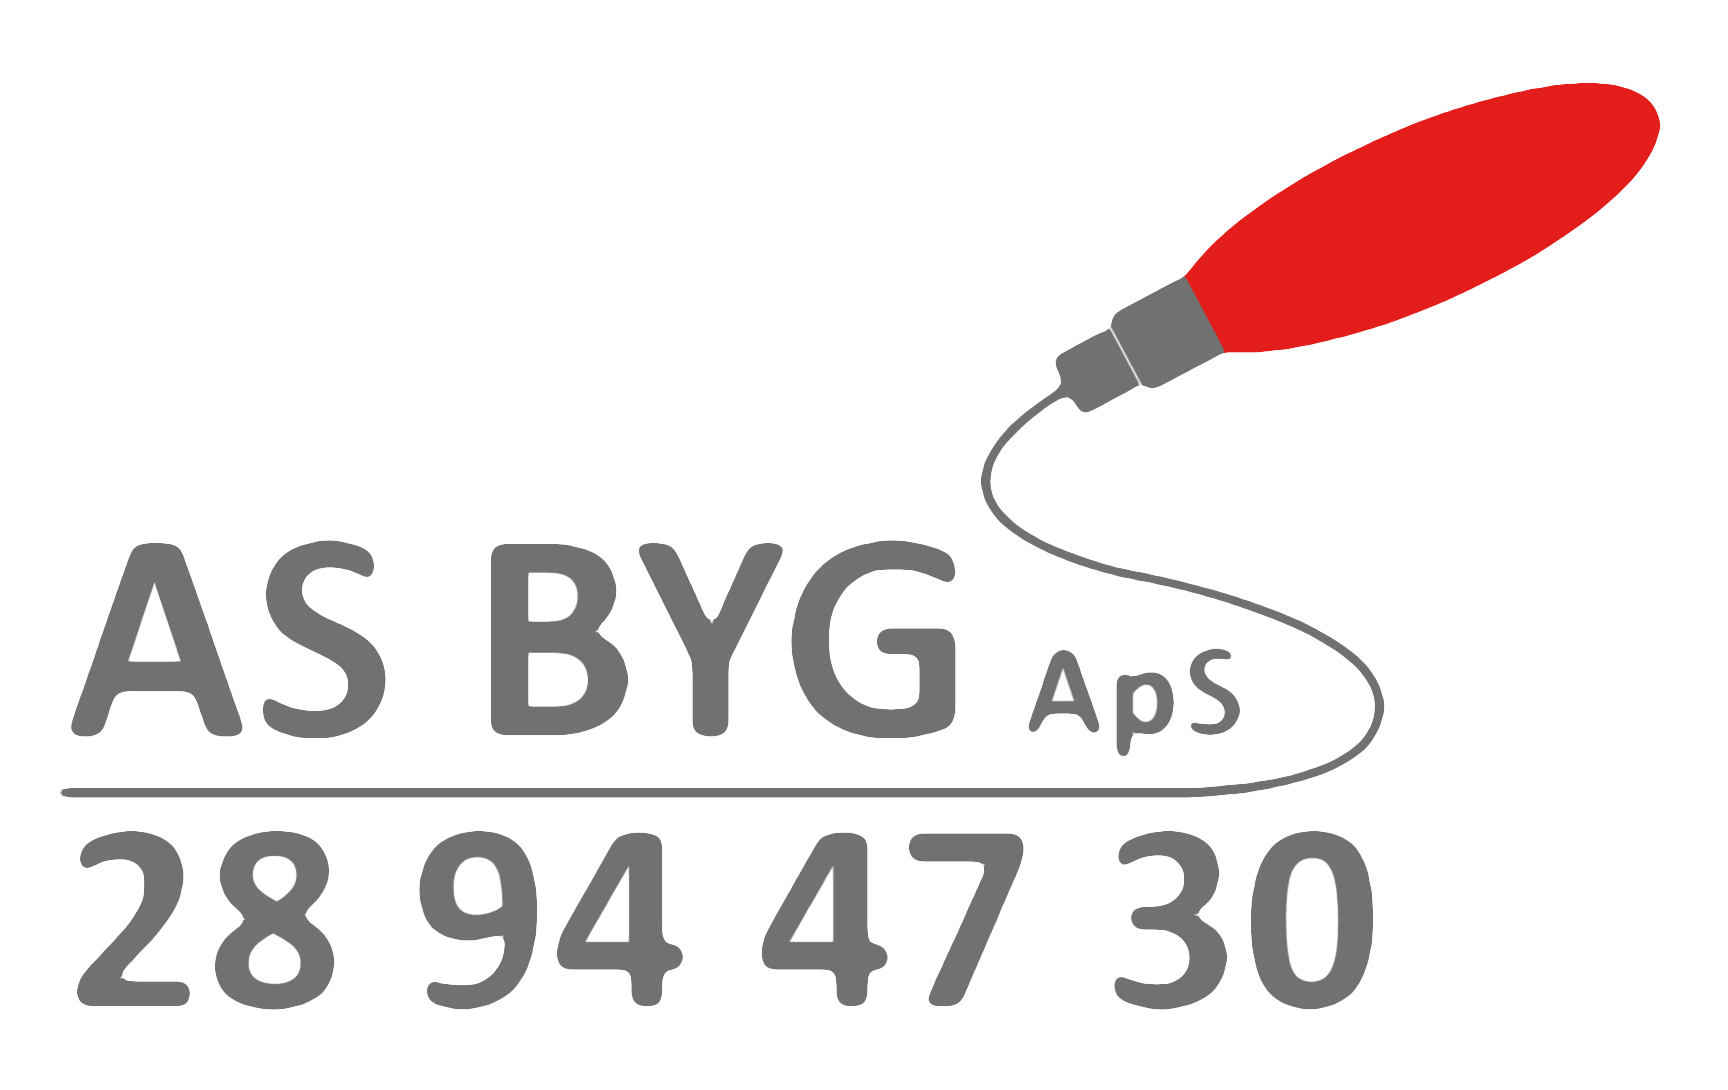 AS Byg ApS